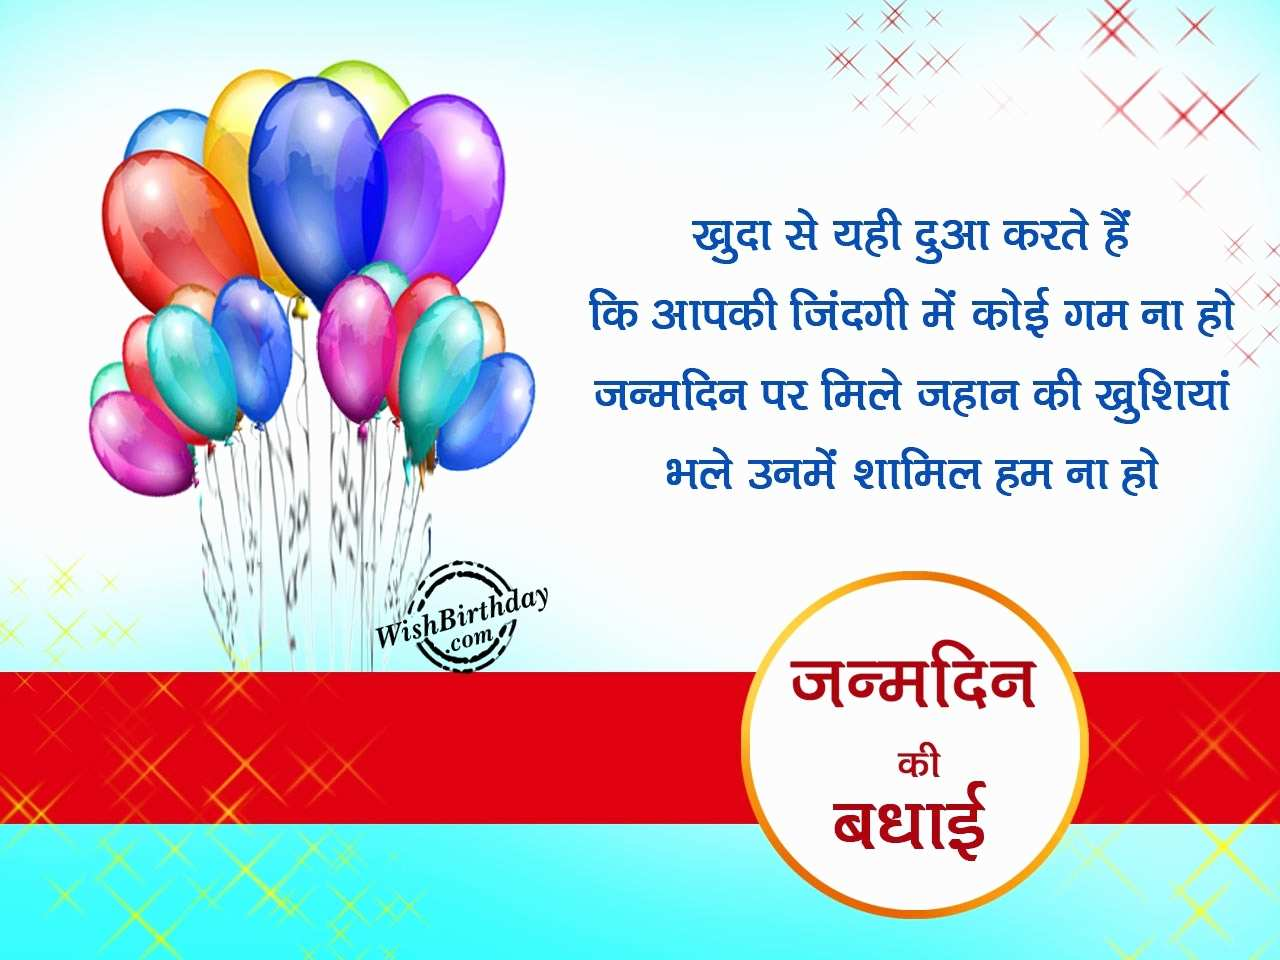 happy birthday message to friend in hindi ; birthday-wishes-for-best-friend-unique-best-birthday-quotes-in-hindi-elegant-happy-birthday-wishes-in-hindi-of-birthday-wishes-for-best-friend